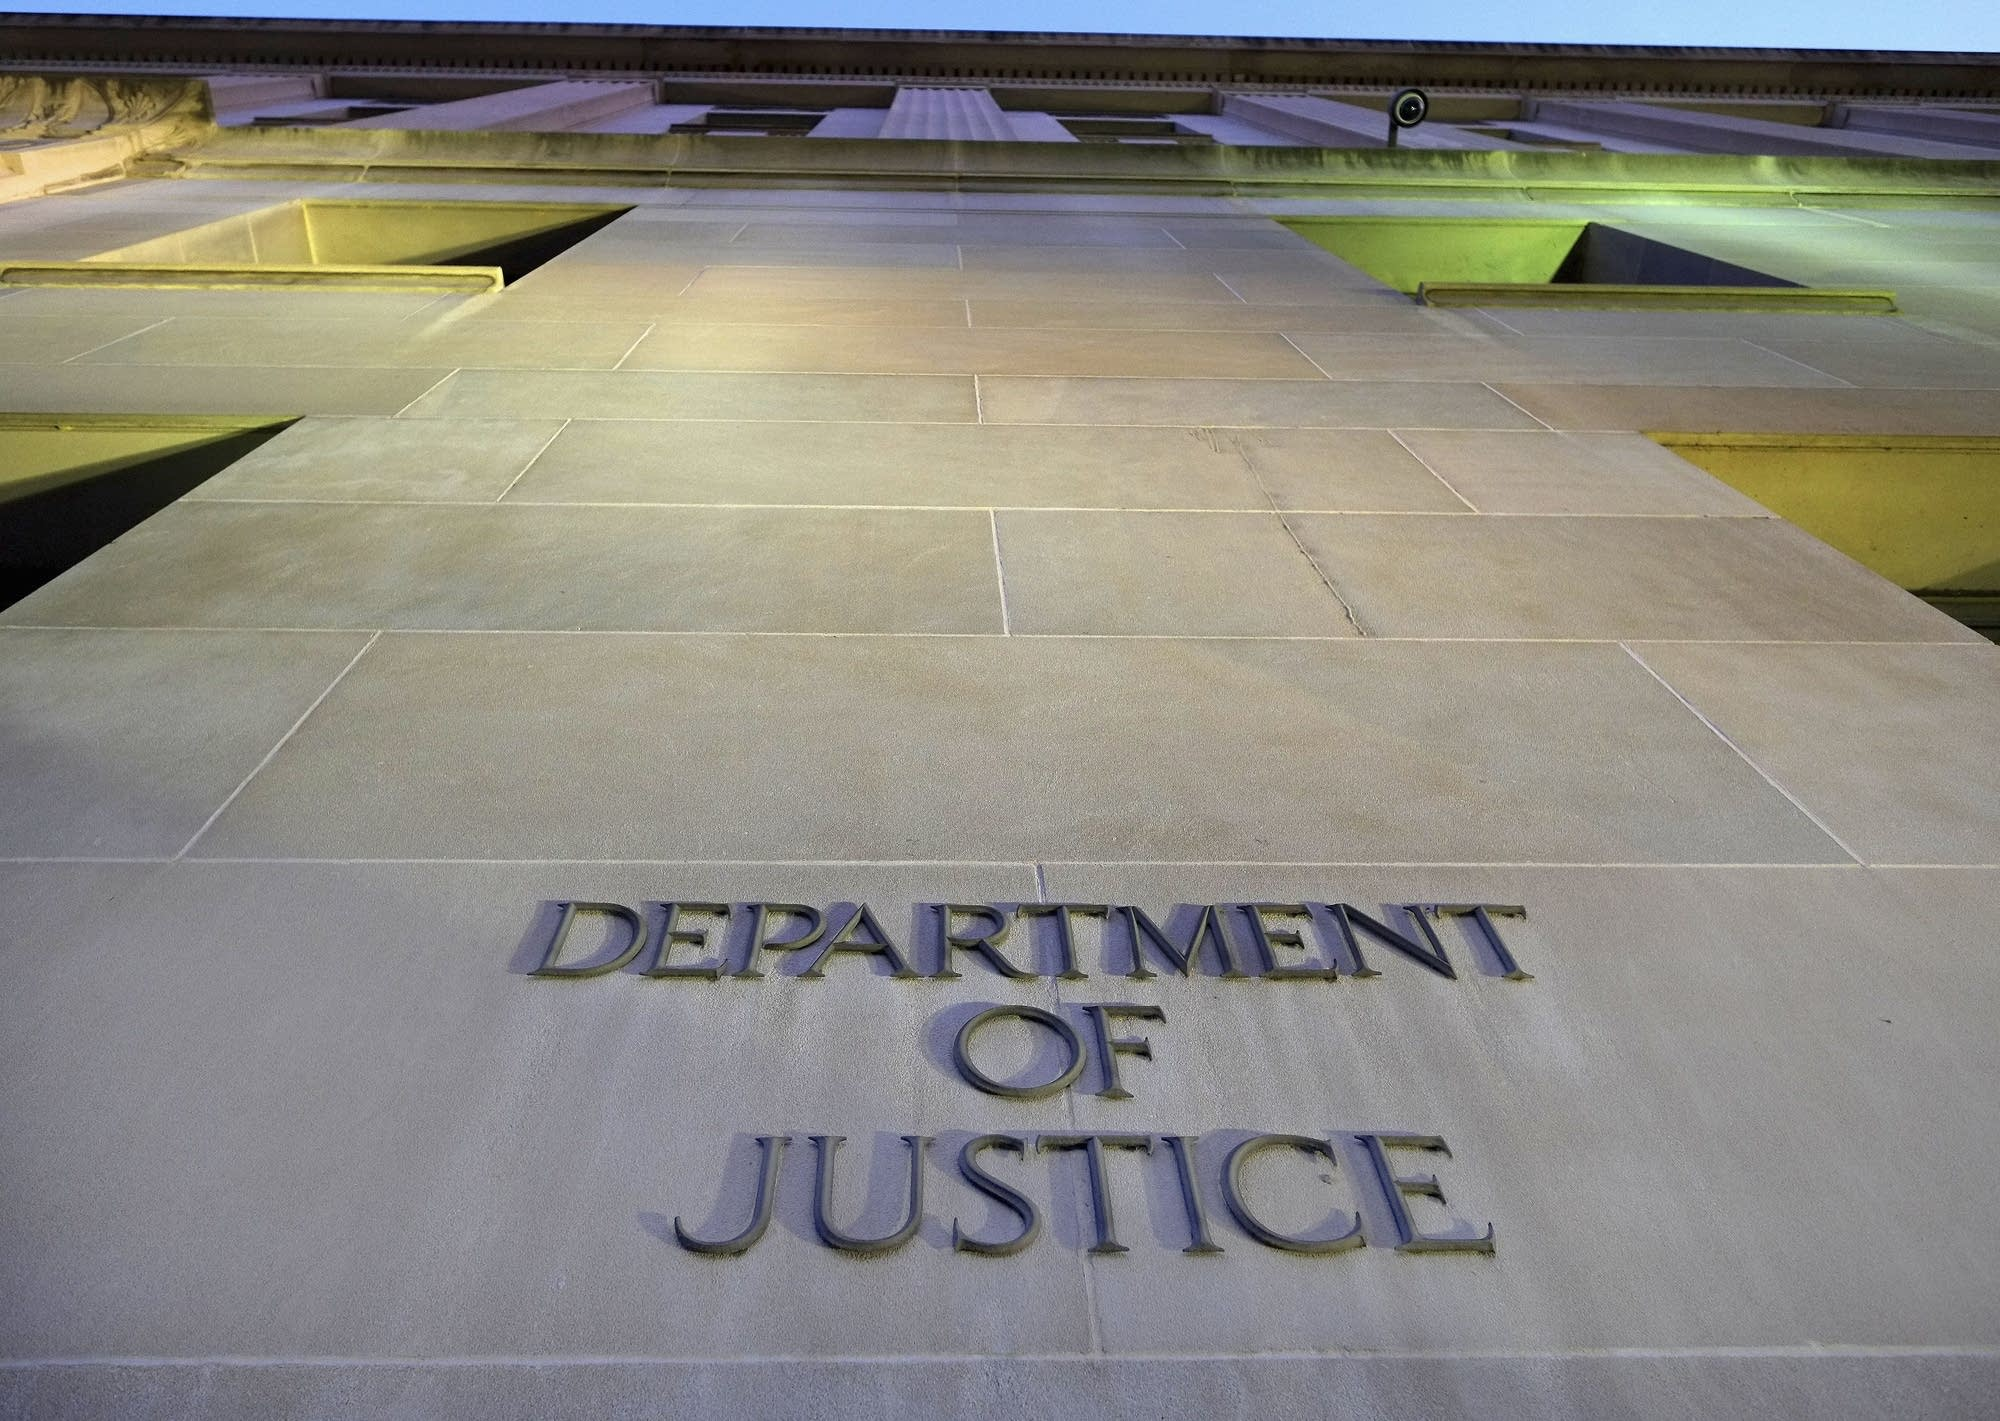 The Department of Justice headquarters building in Washington, DC.